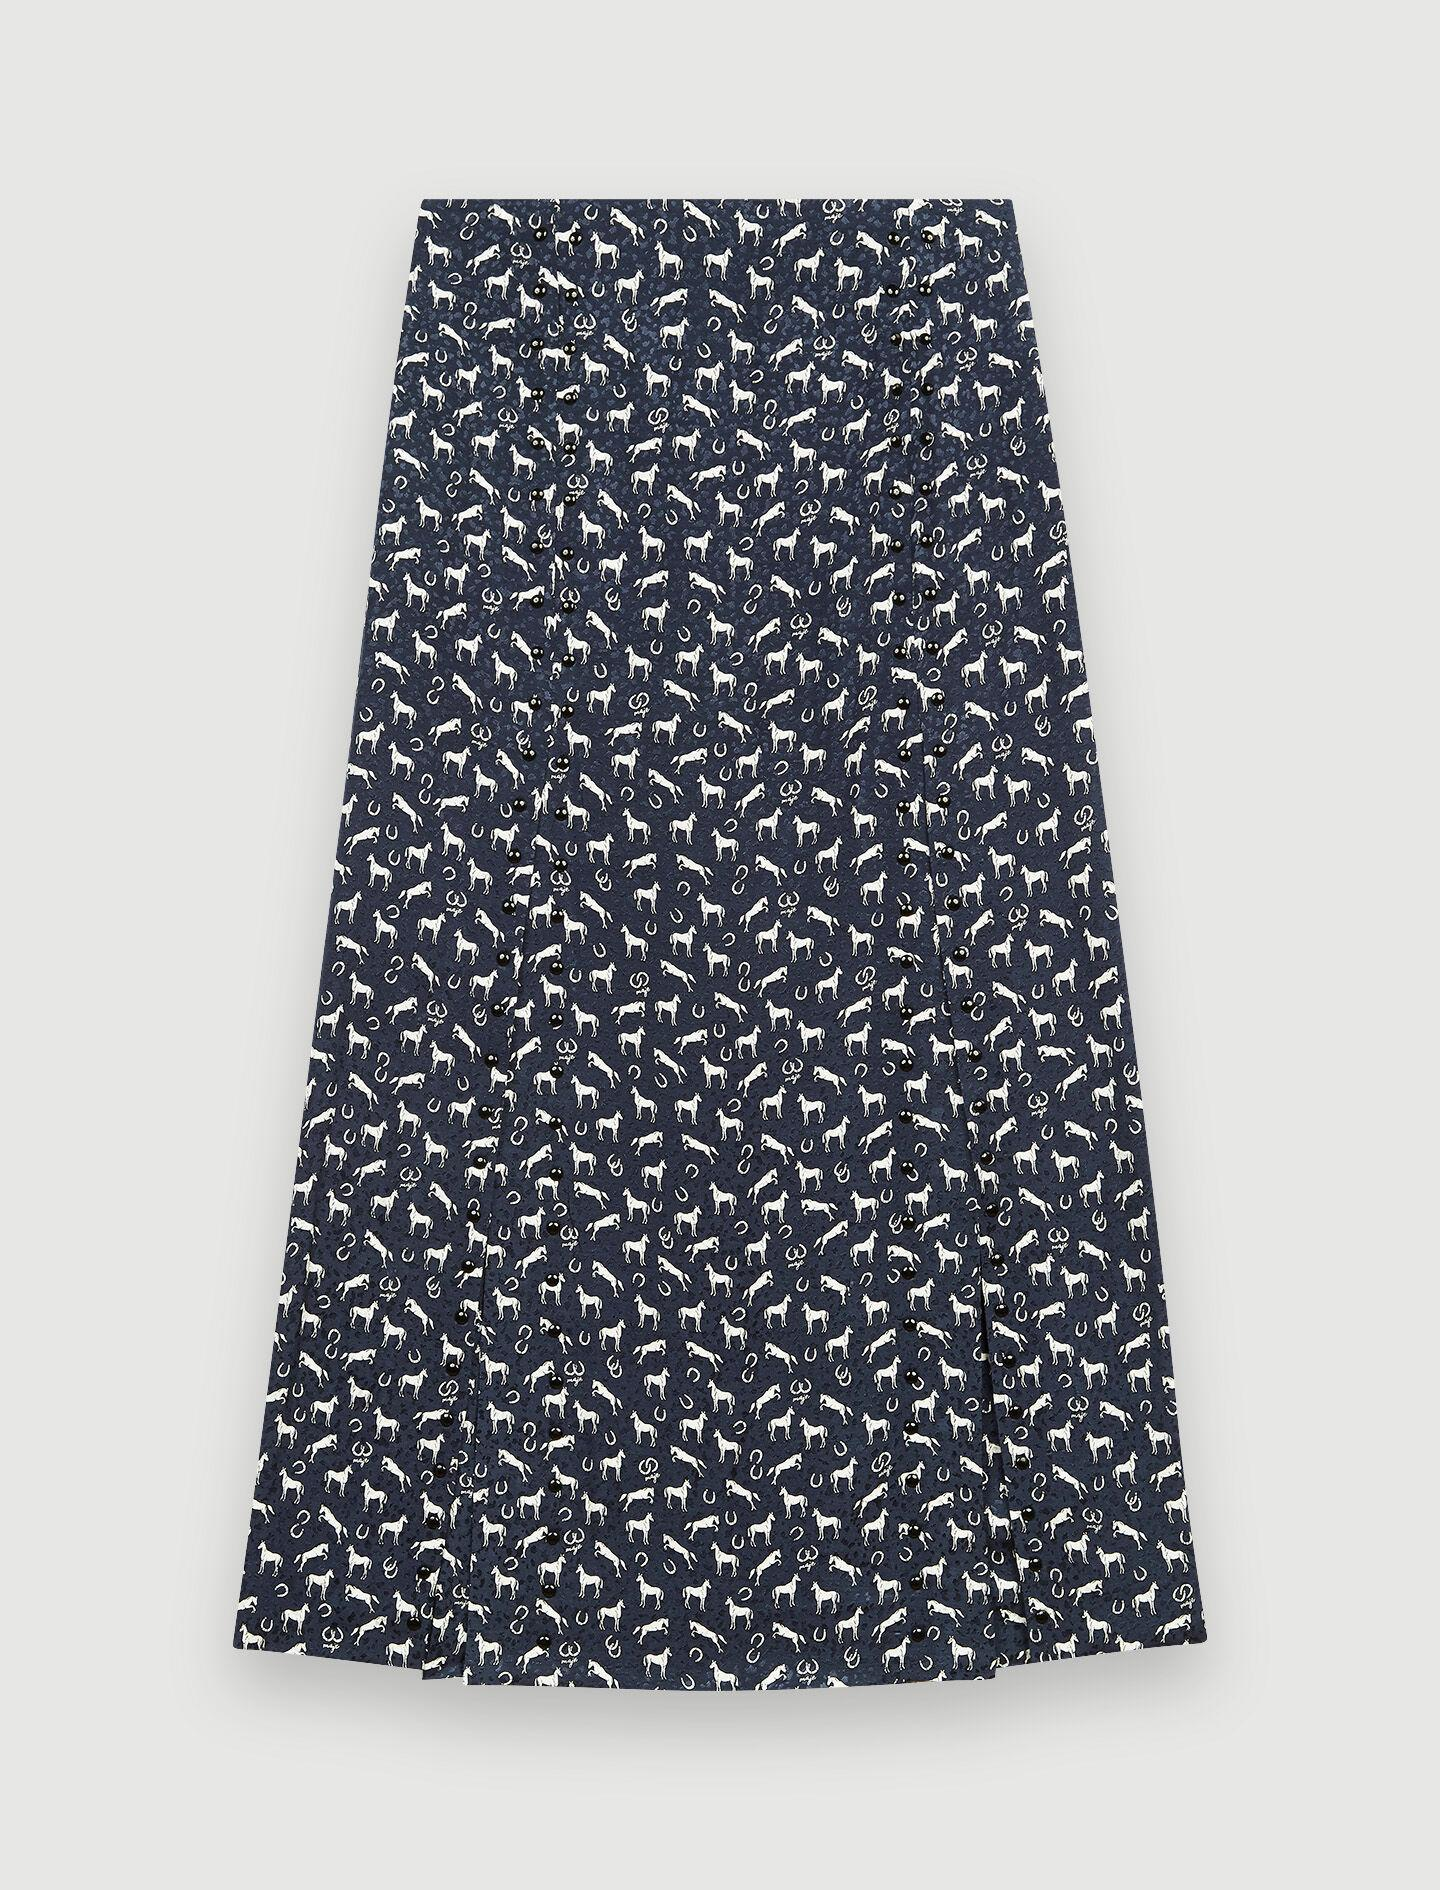 HORSE PRINT JACQUARD SKIRT WITH STUDS 4